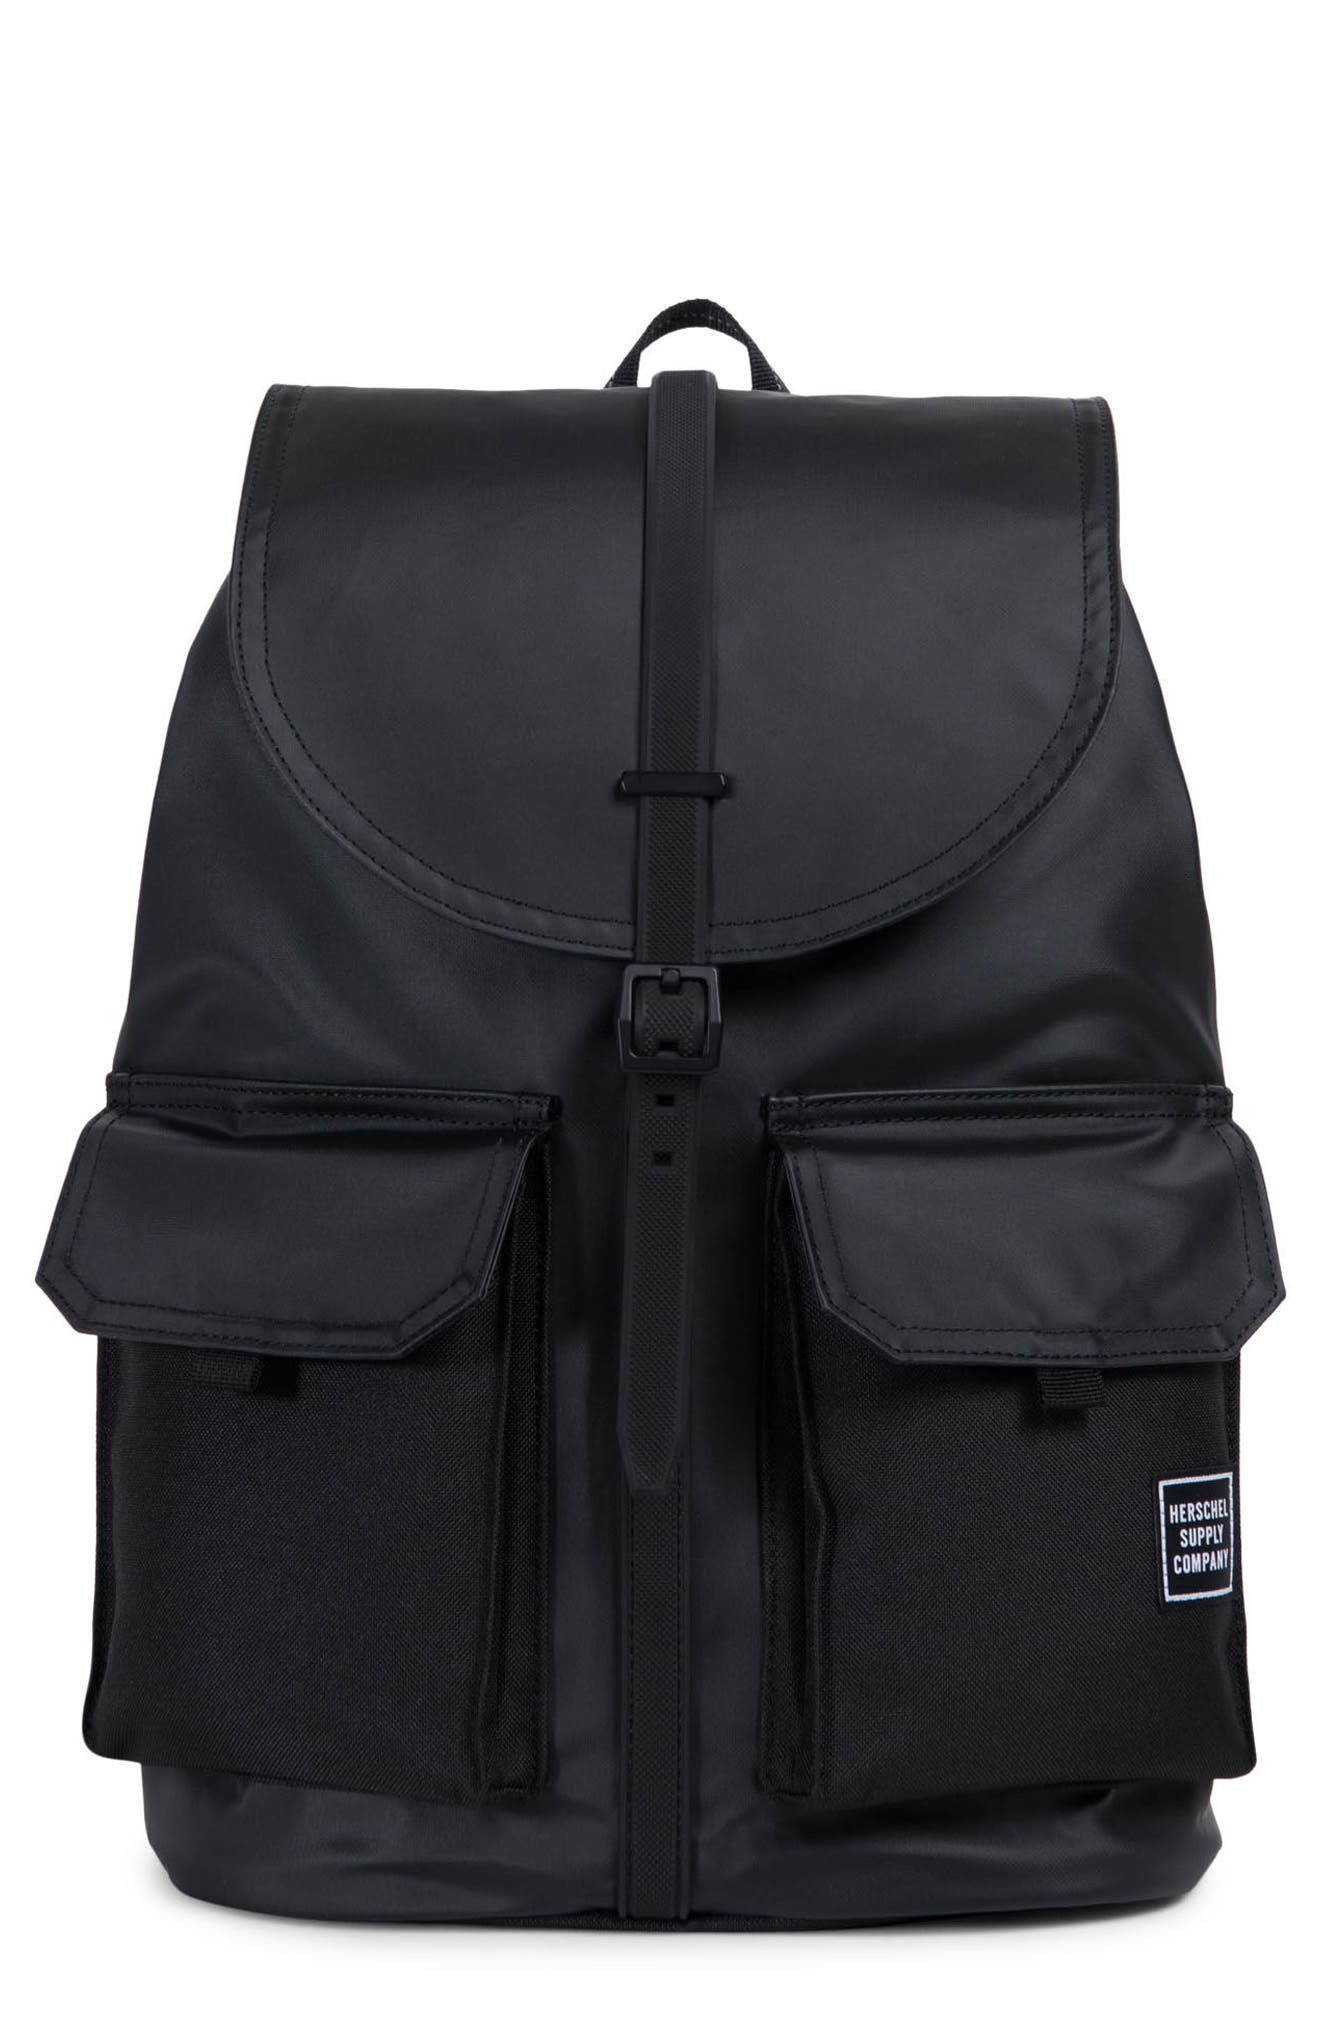 Herschel Supply Co. Dawson Studio Collection Backpack